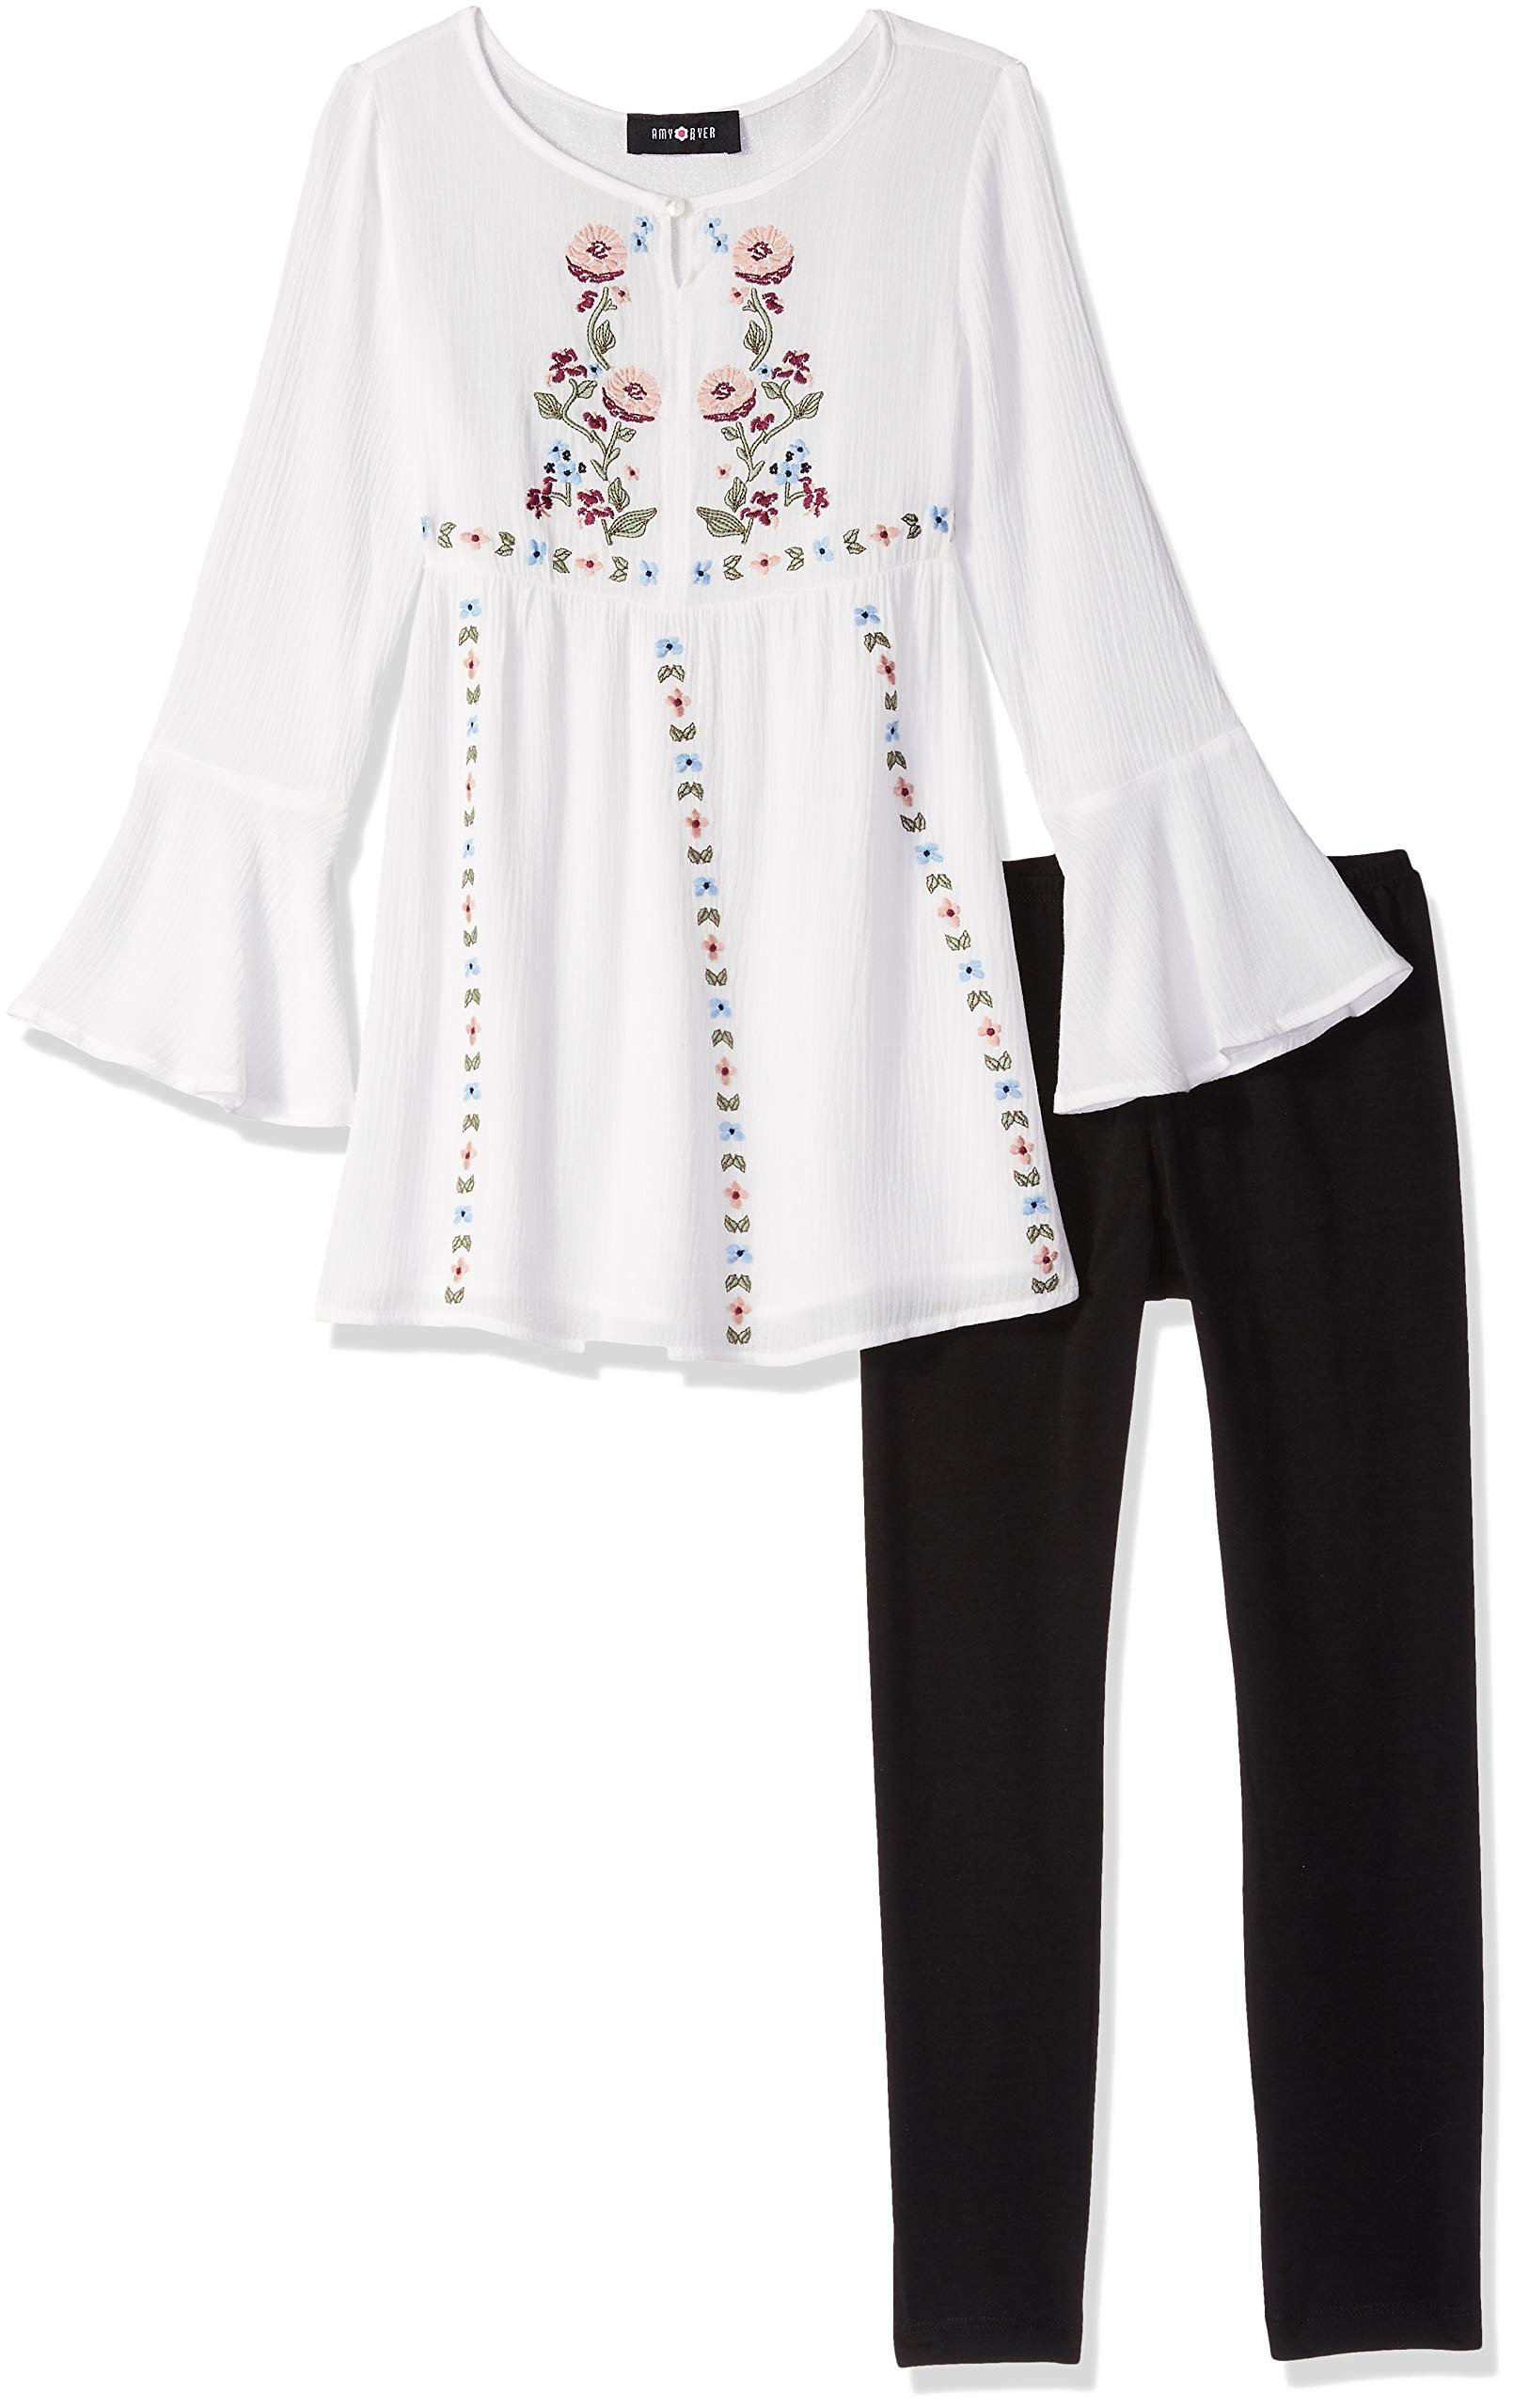 Amy Byer Big Girls' Long Sleeve Tunic and Legging Outfit Set, Ivory, S